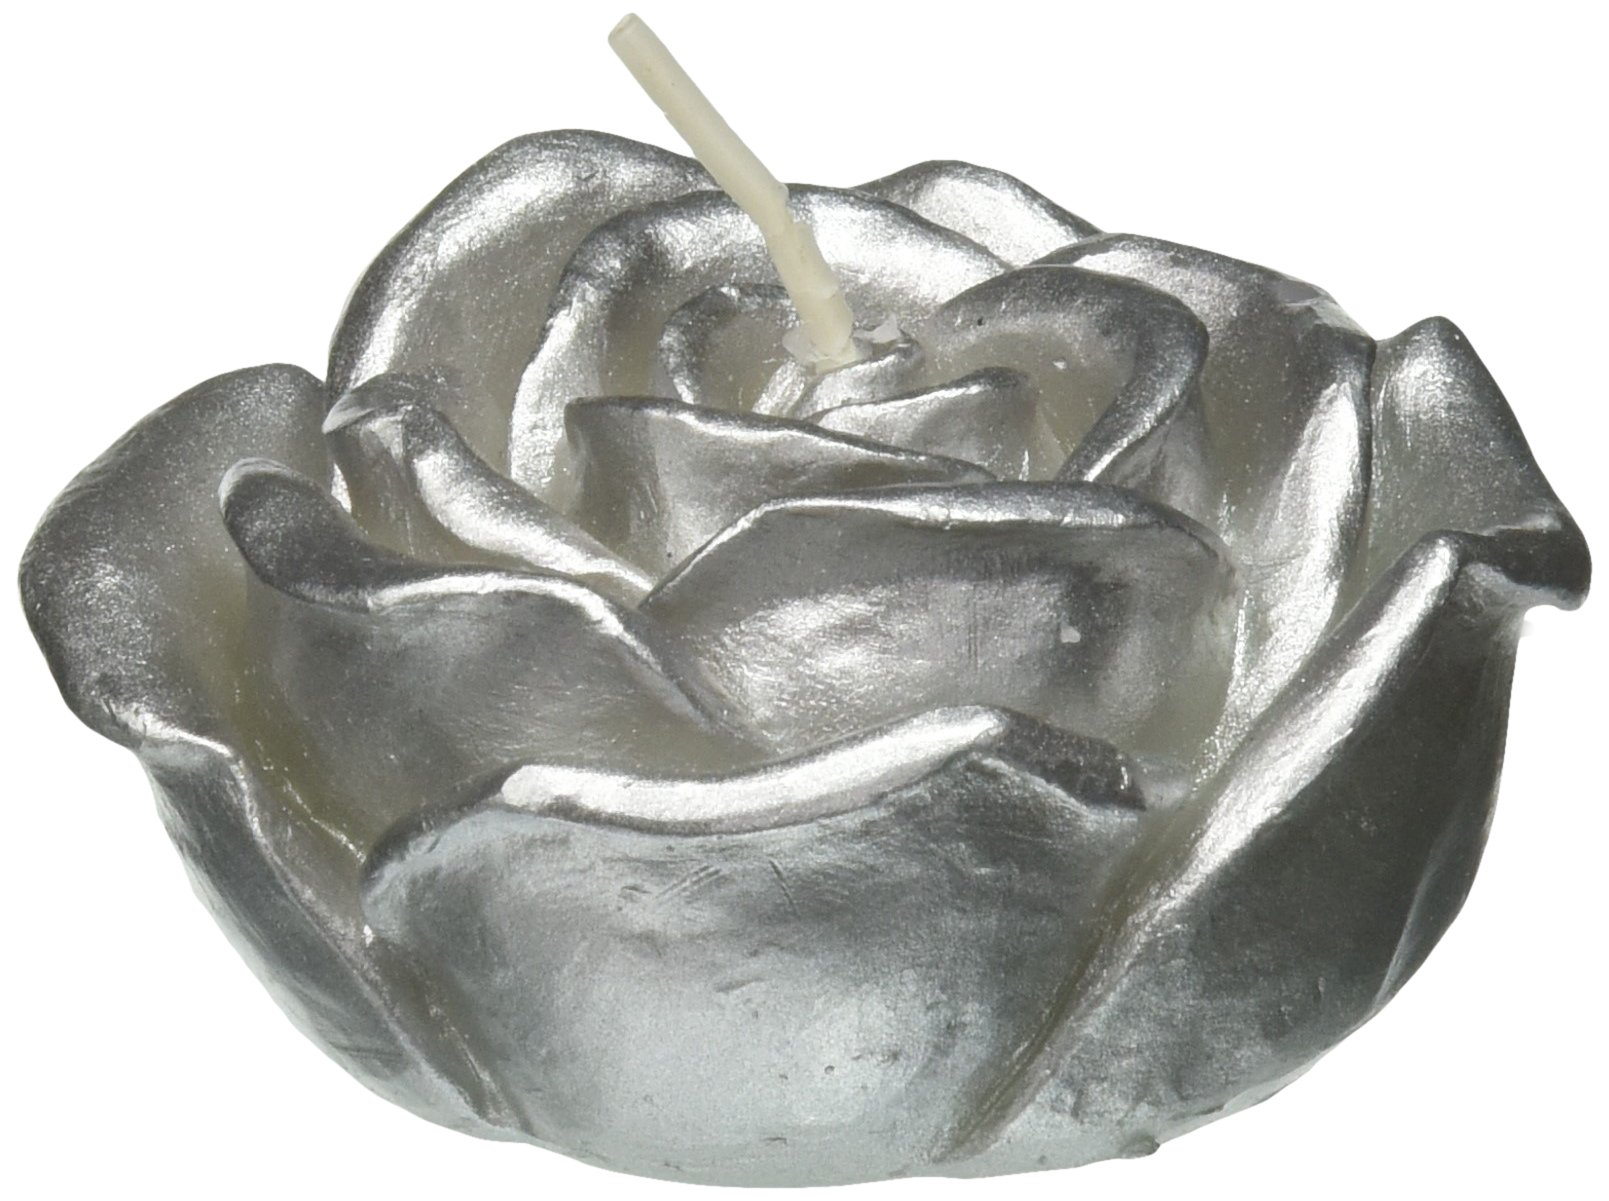 Zest Candle 12-Piece Folding Candles, 3-Inch, Metallic Silver Rose